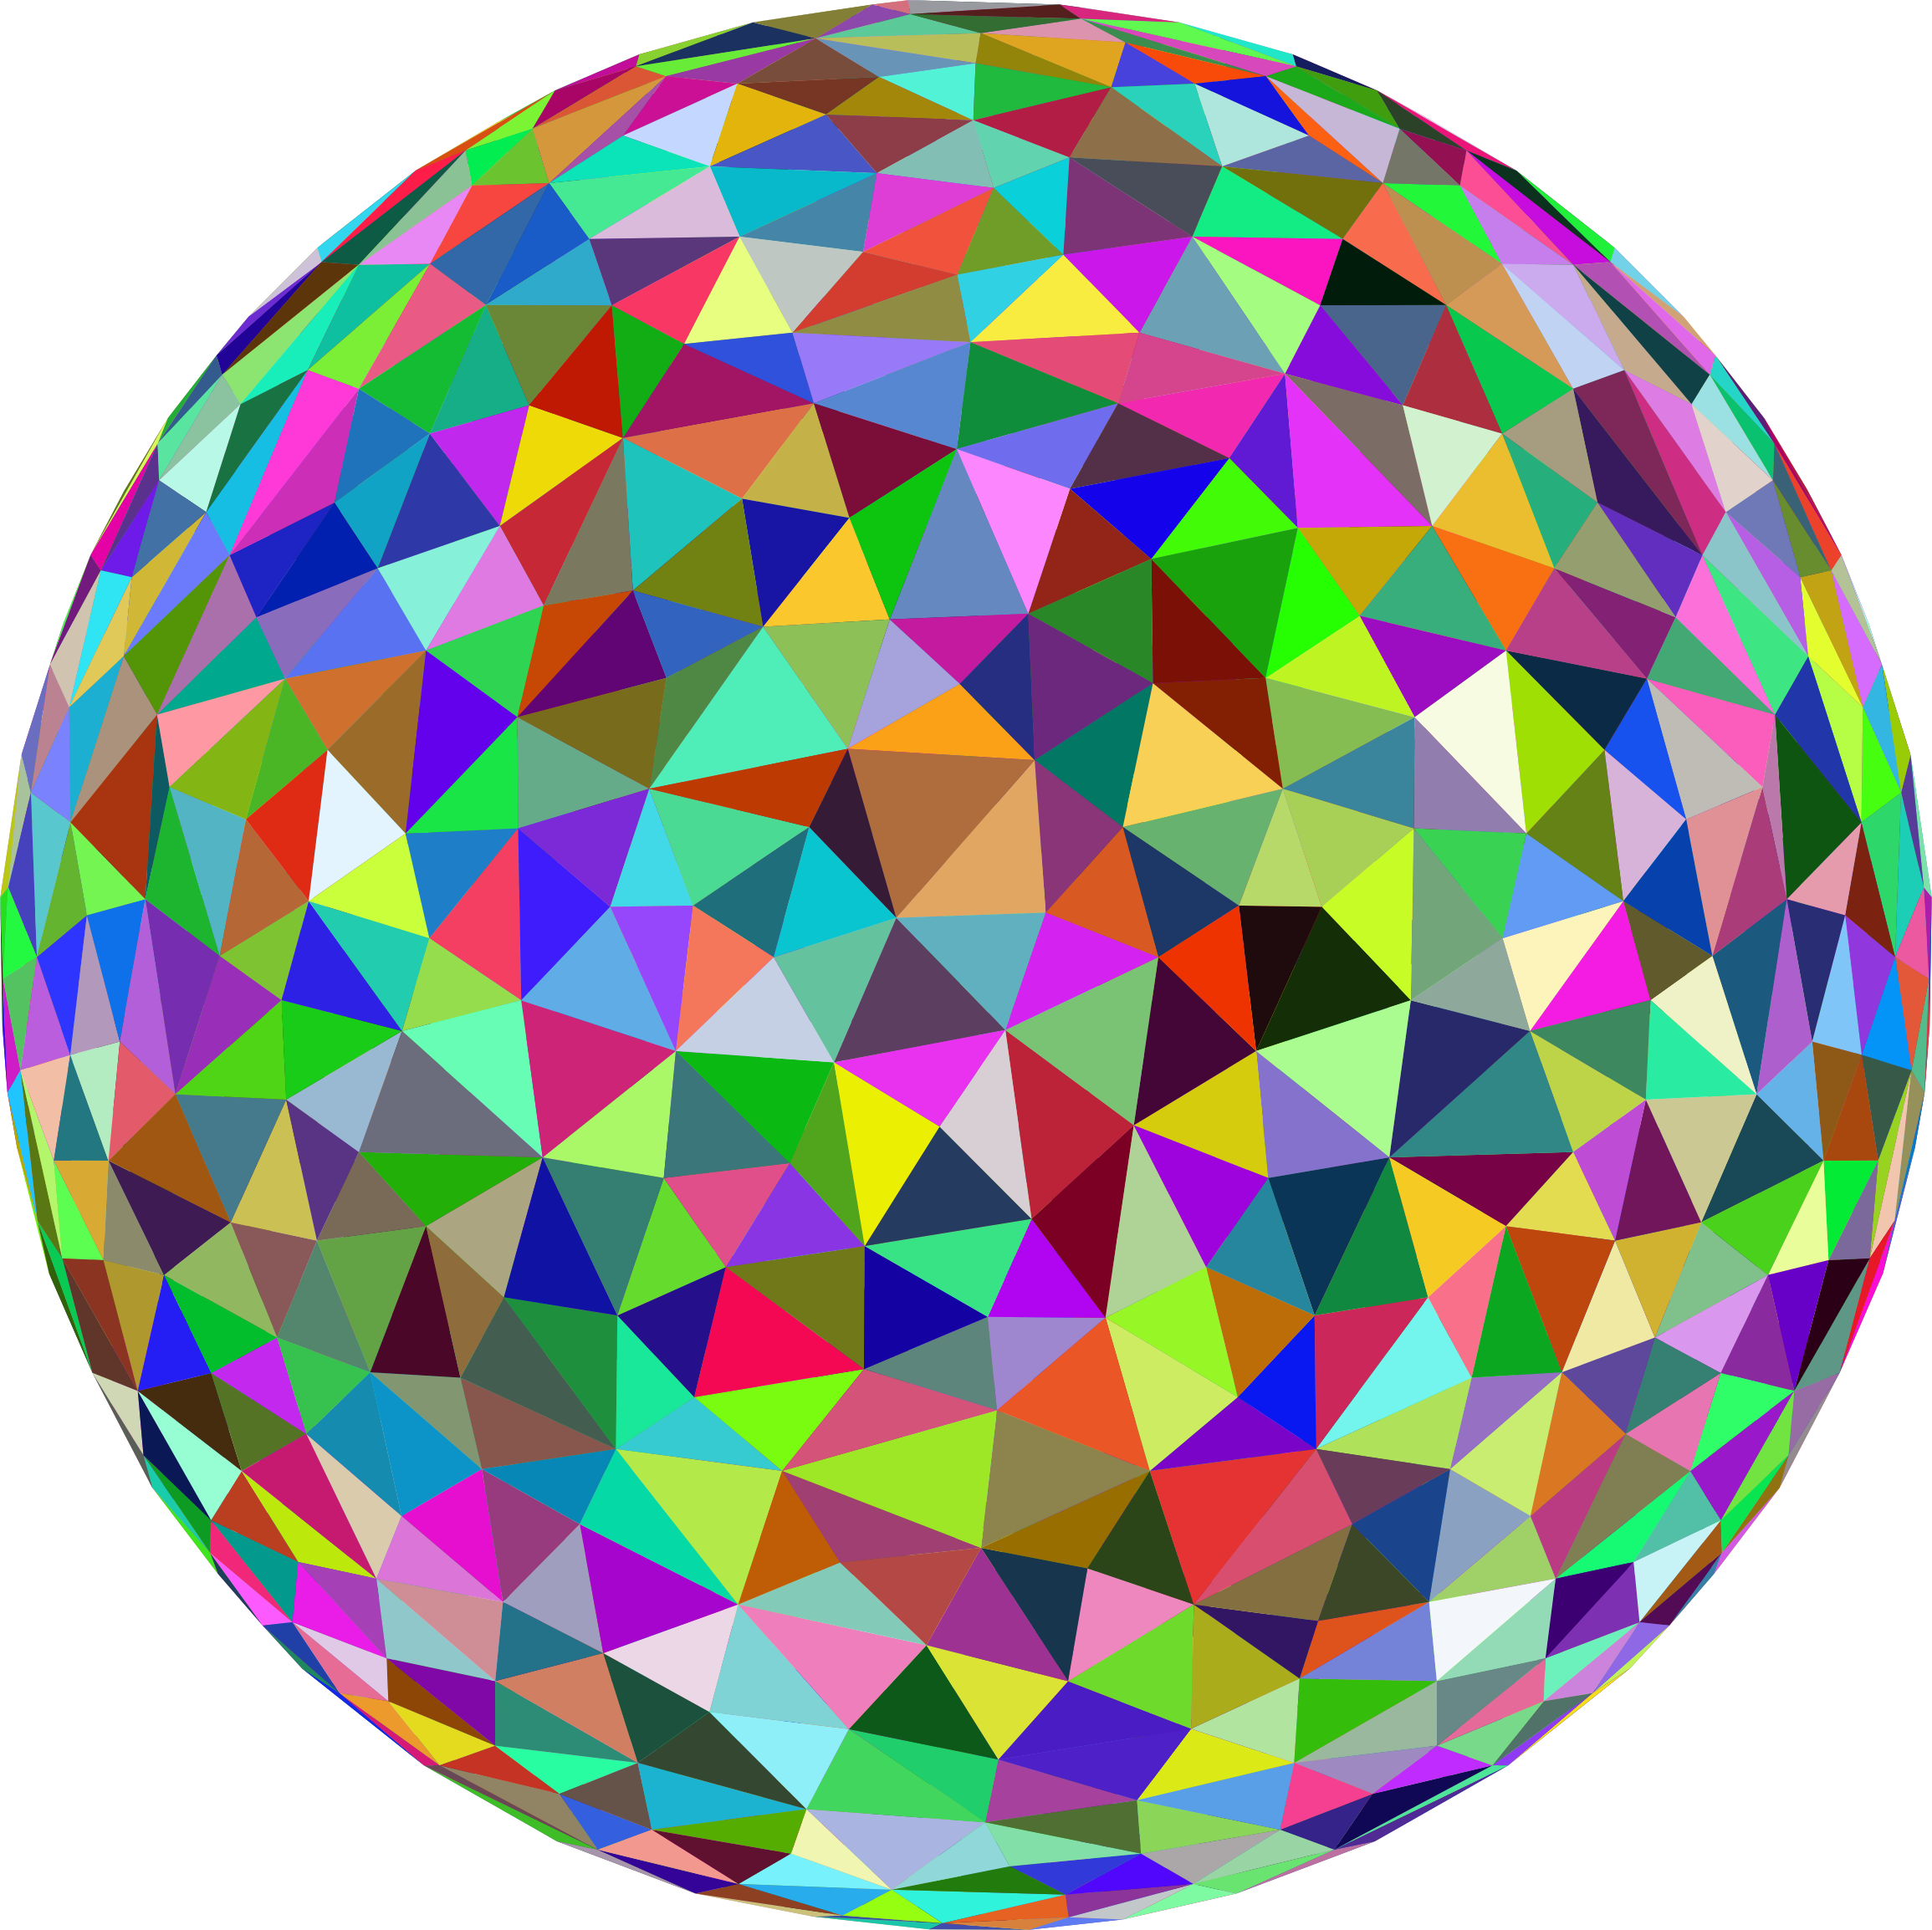 Prismatic Low Poly Sphere by GDJ